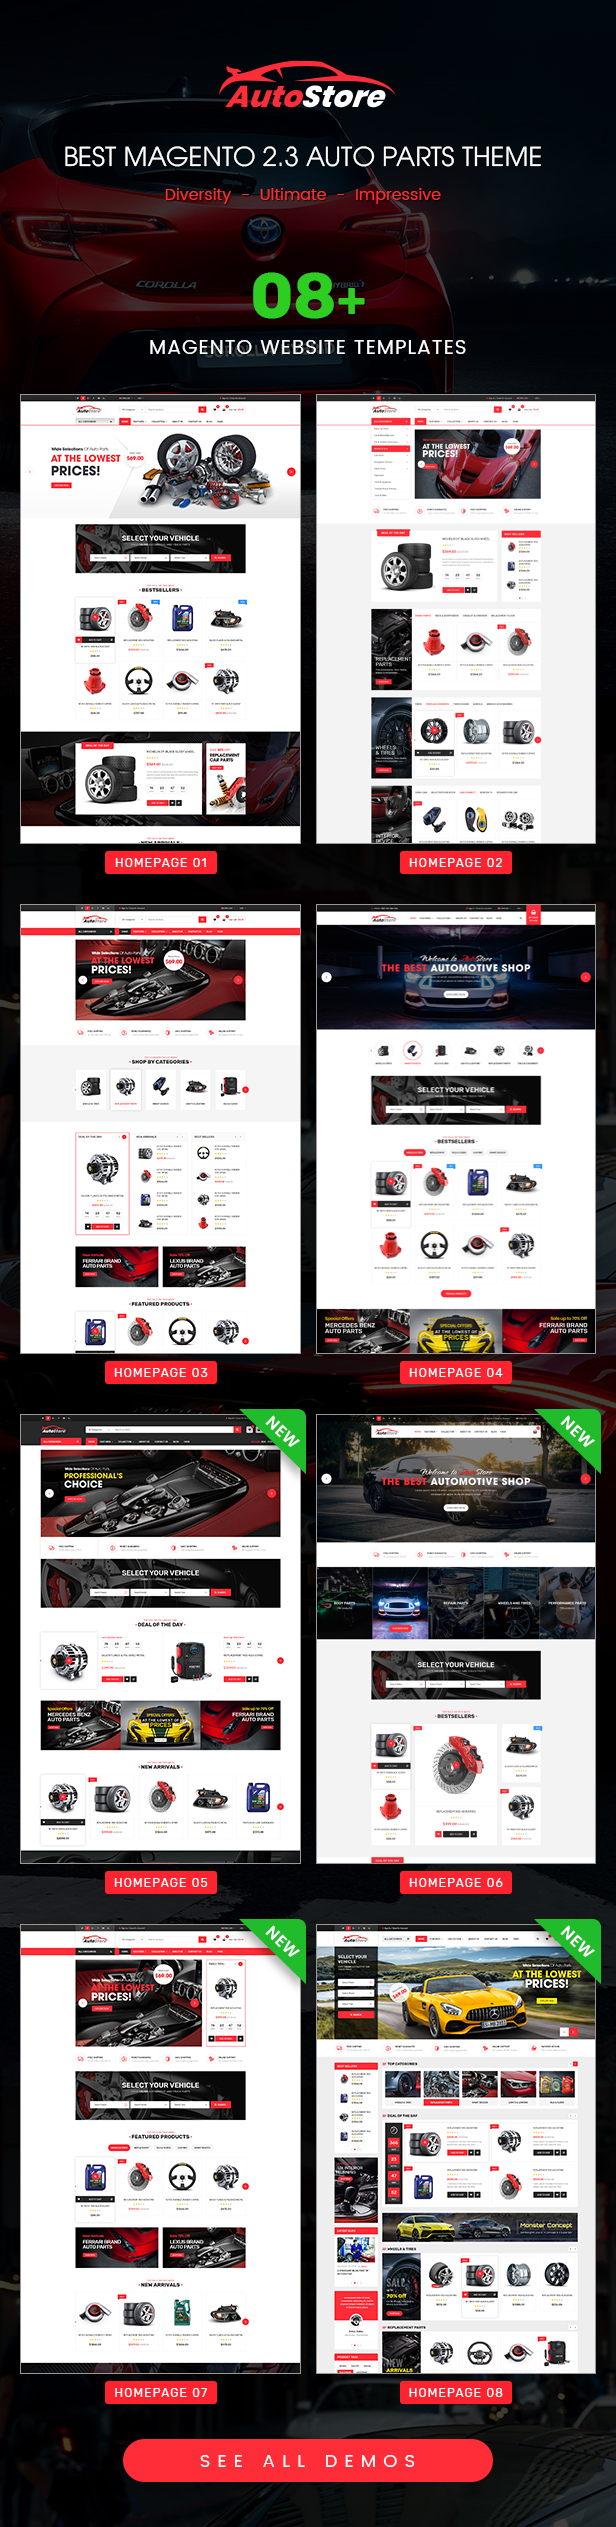 AutoStore - Auto Parts and Equipments Magento 2 Theme with Ajax Attributes Search Module - 5